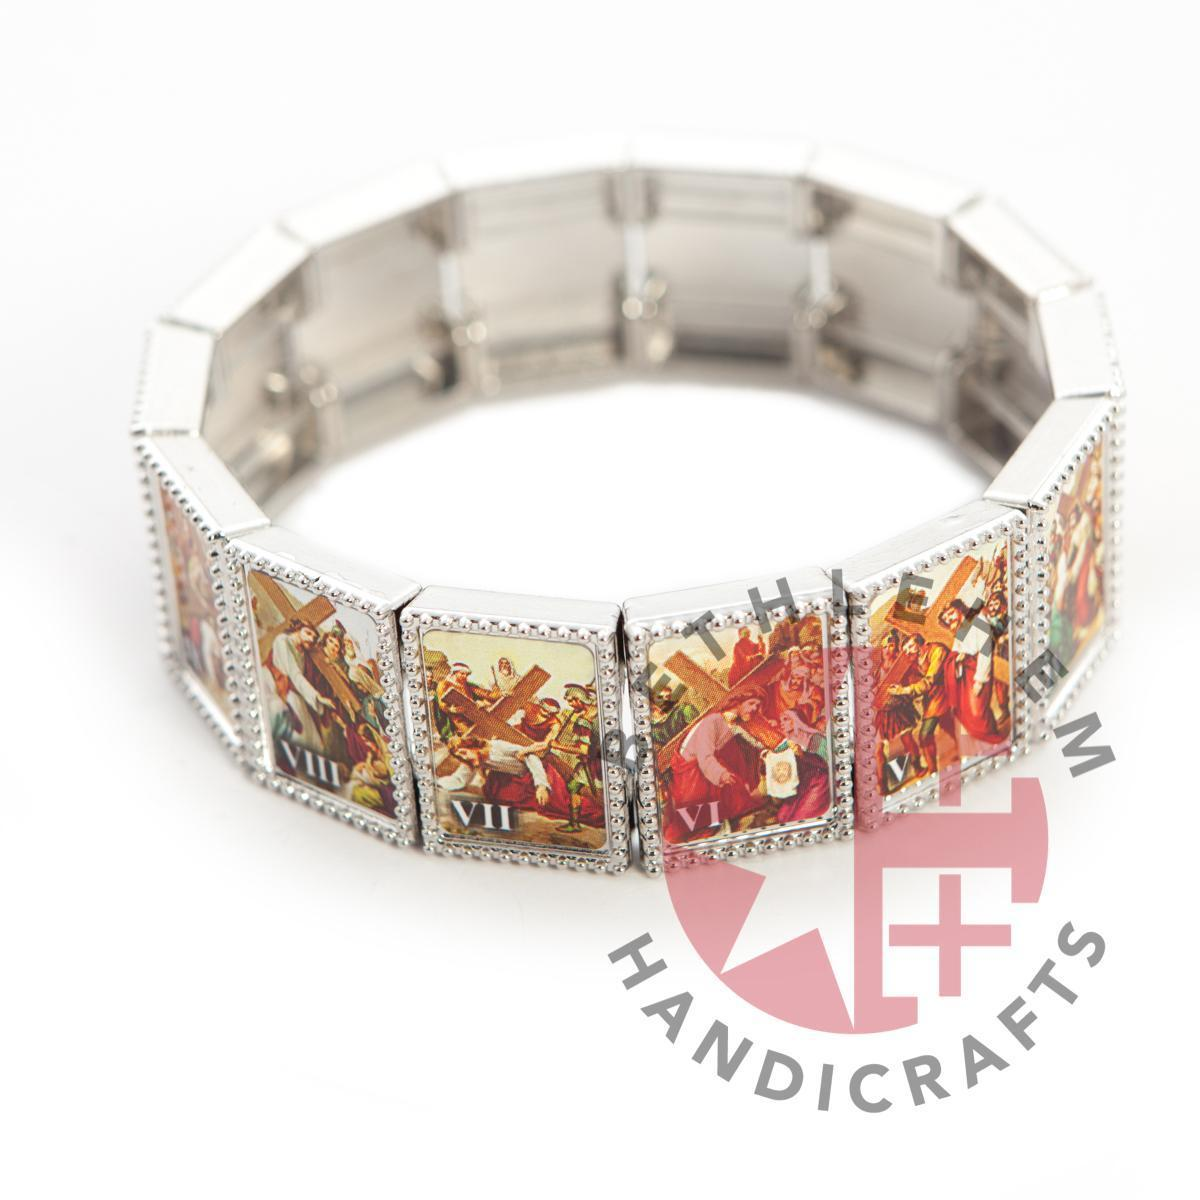 The Fourteen Stations of the cross Bracelet - Olive Wood Jewelry - Jewelry - Bethlehem Handicrafts